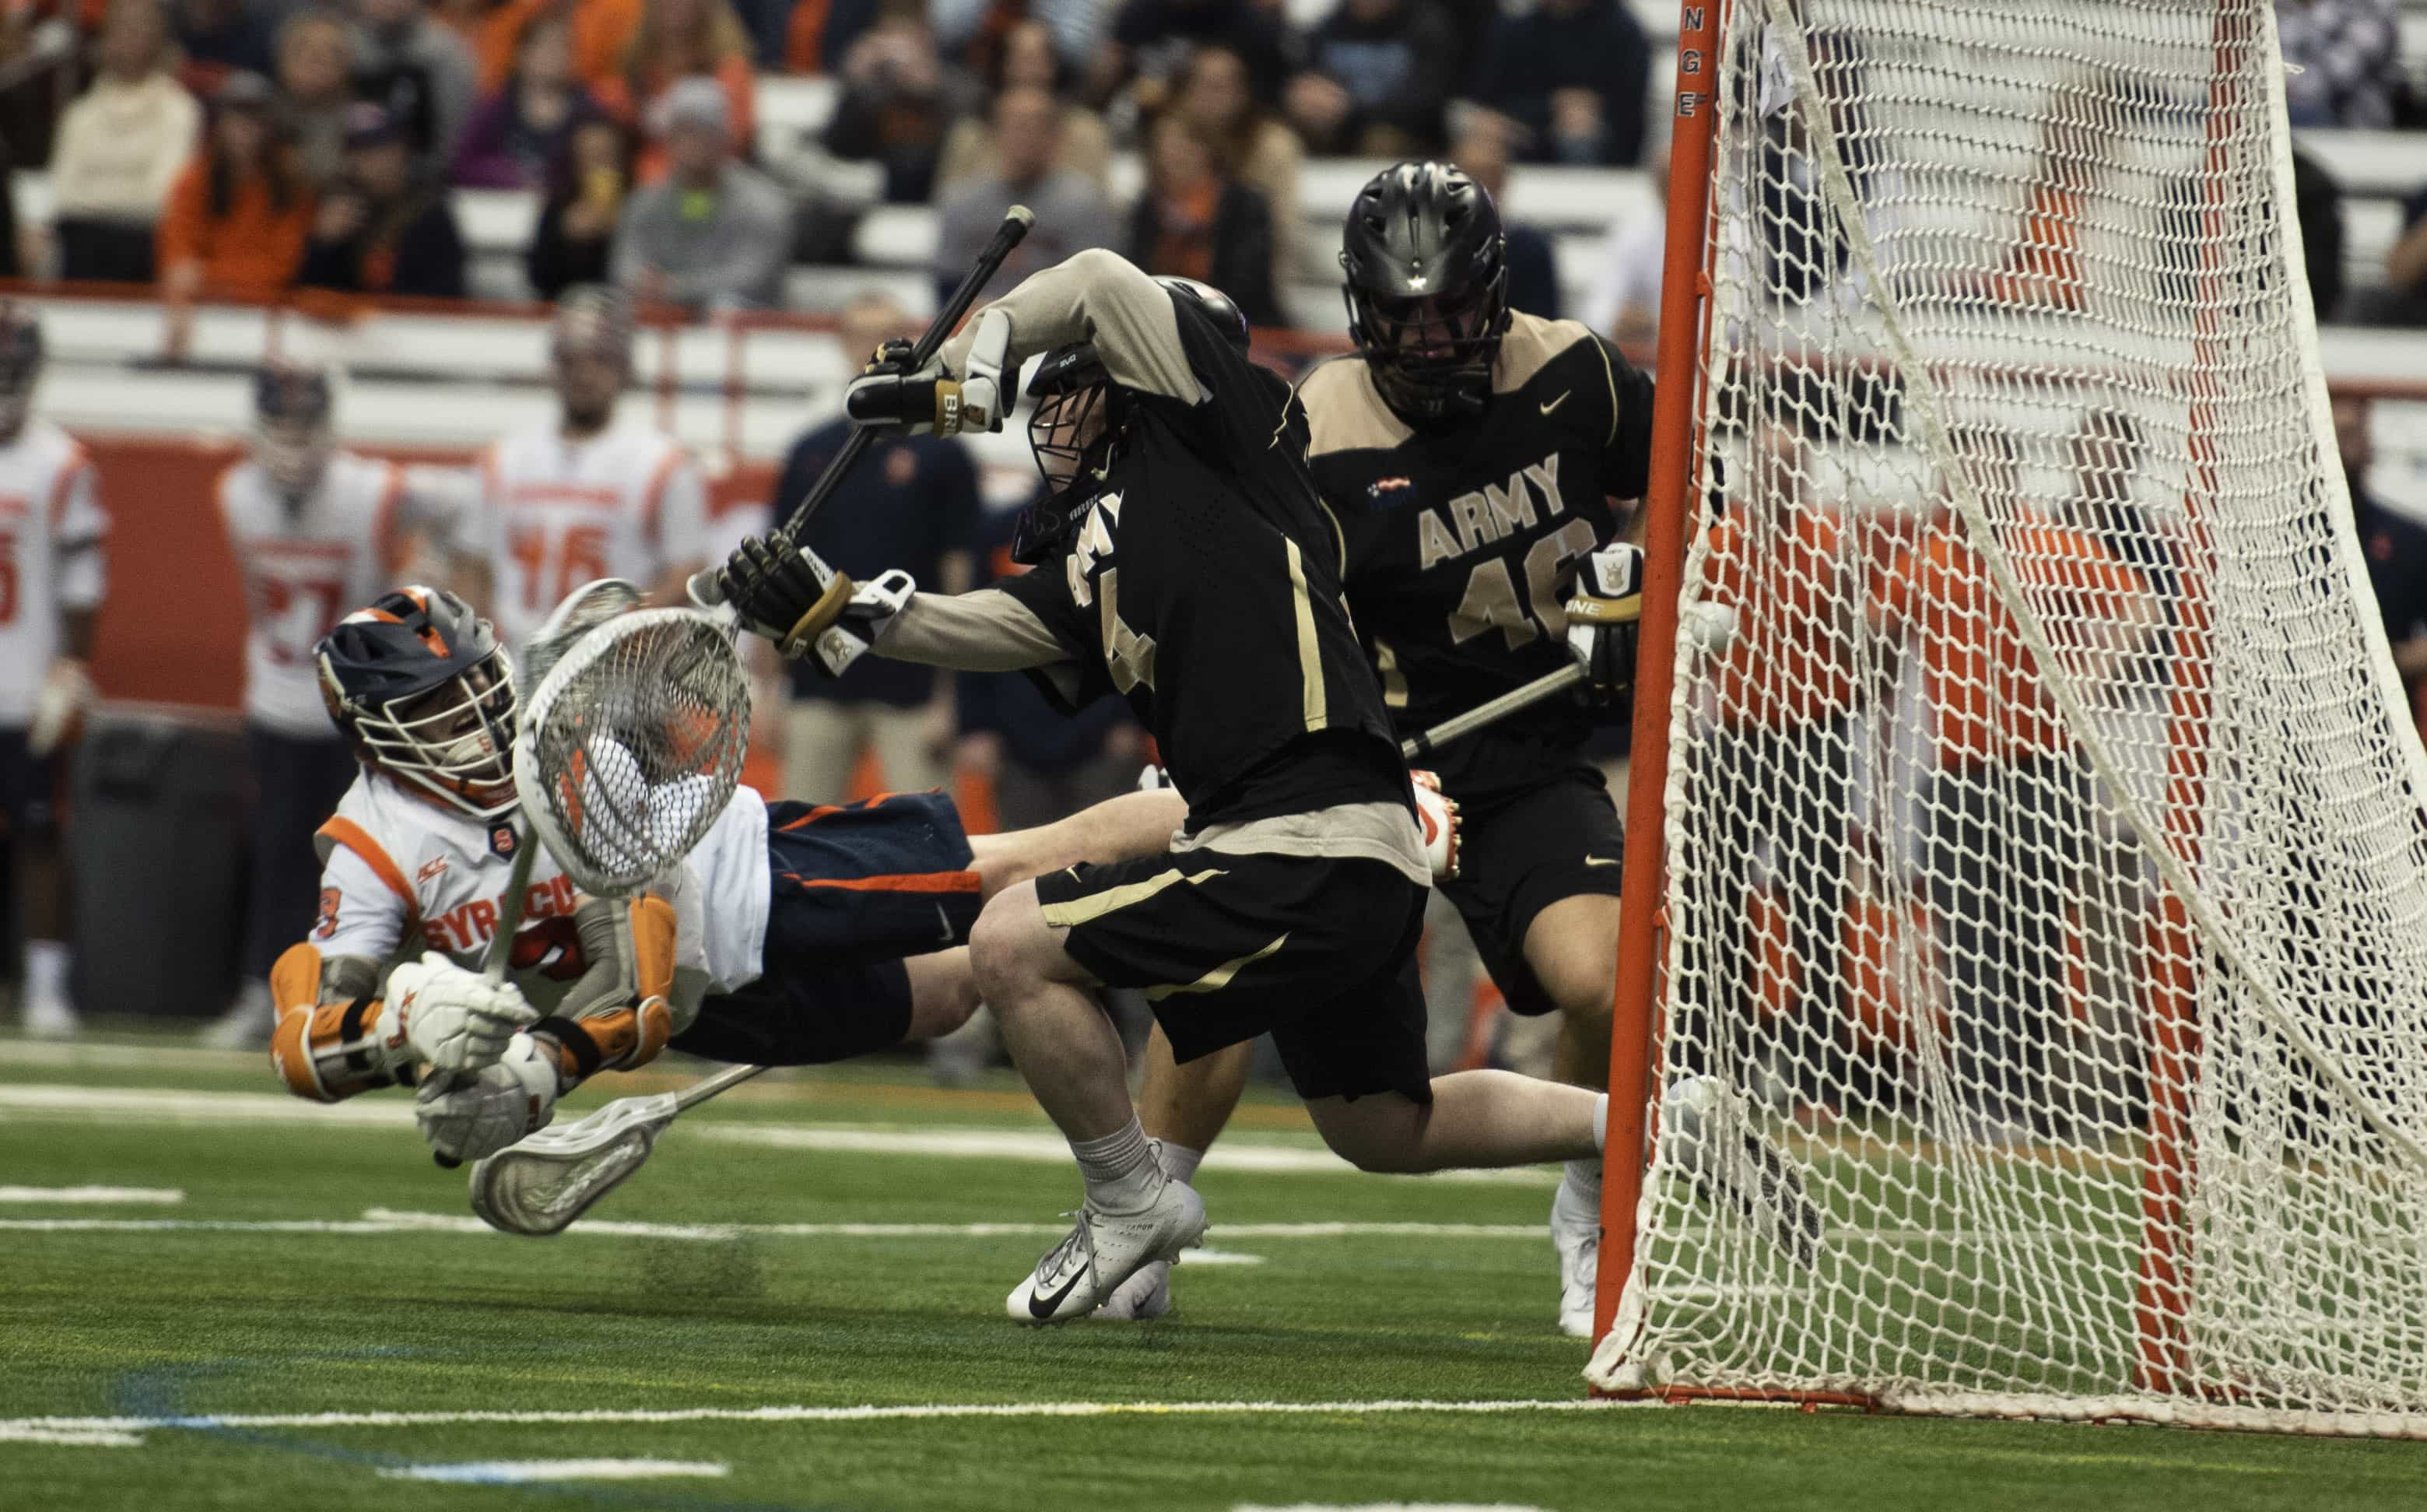 Senior Nate Solomon scores a diving goal during SU's 10-8 over Army.